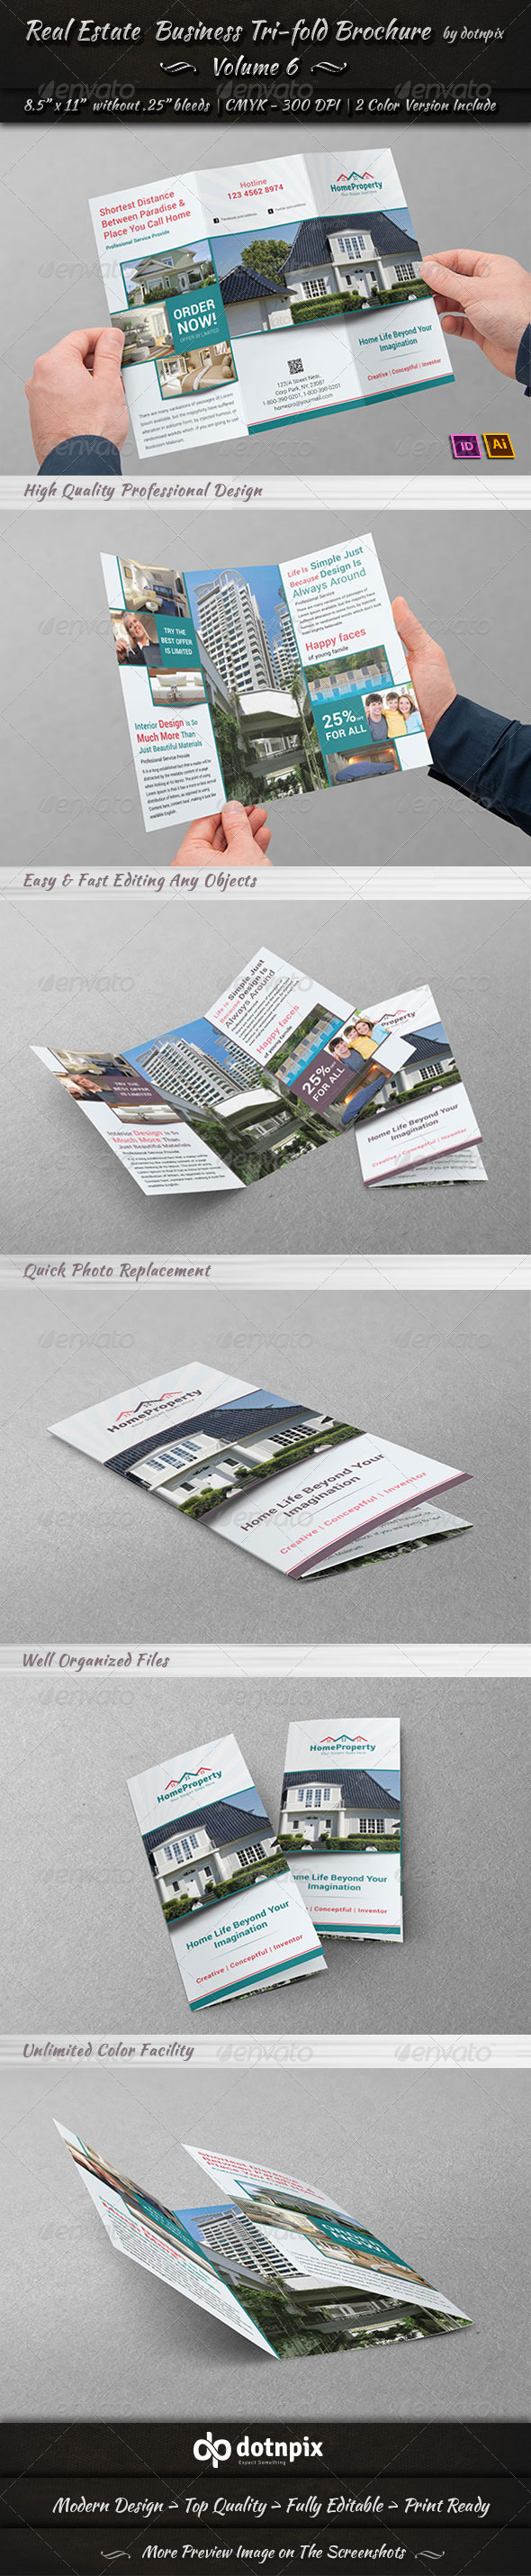 GraphicRiver Real Estate Business TriFold Brochure Volume 6 6712579